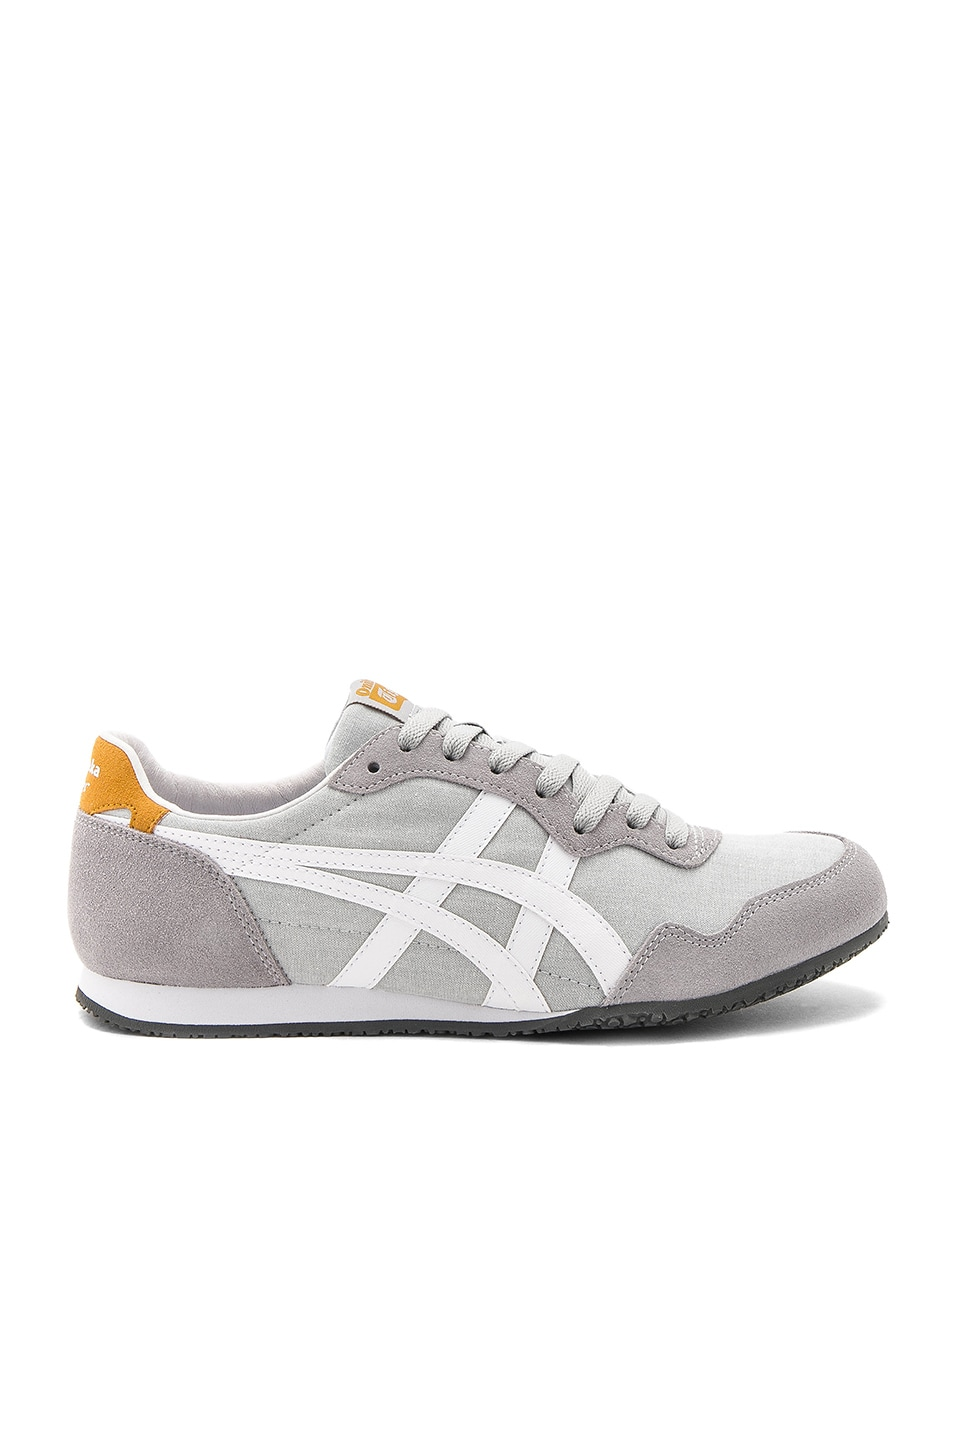 Serrano by Onitsuka Tiger